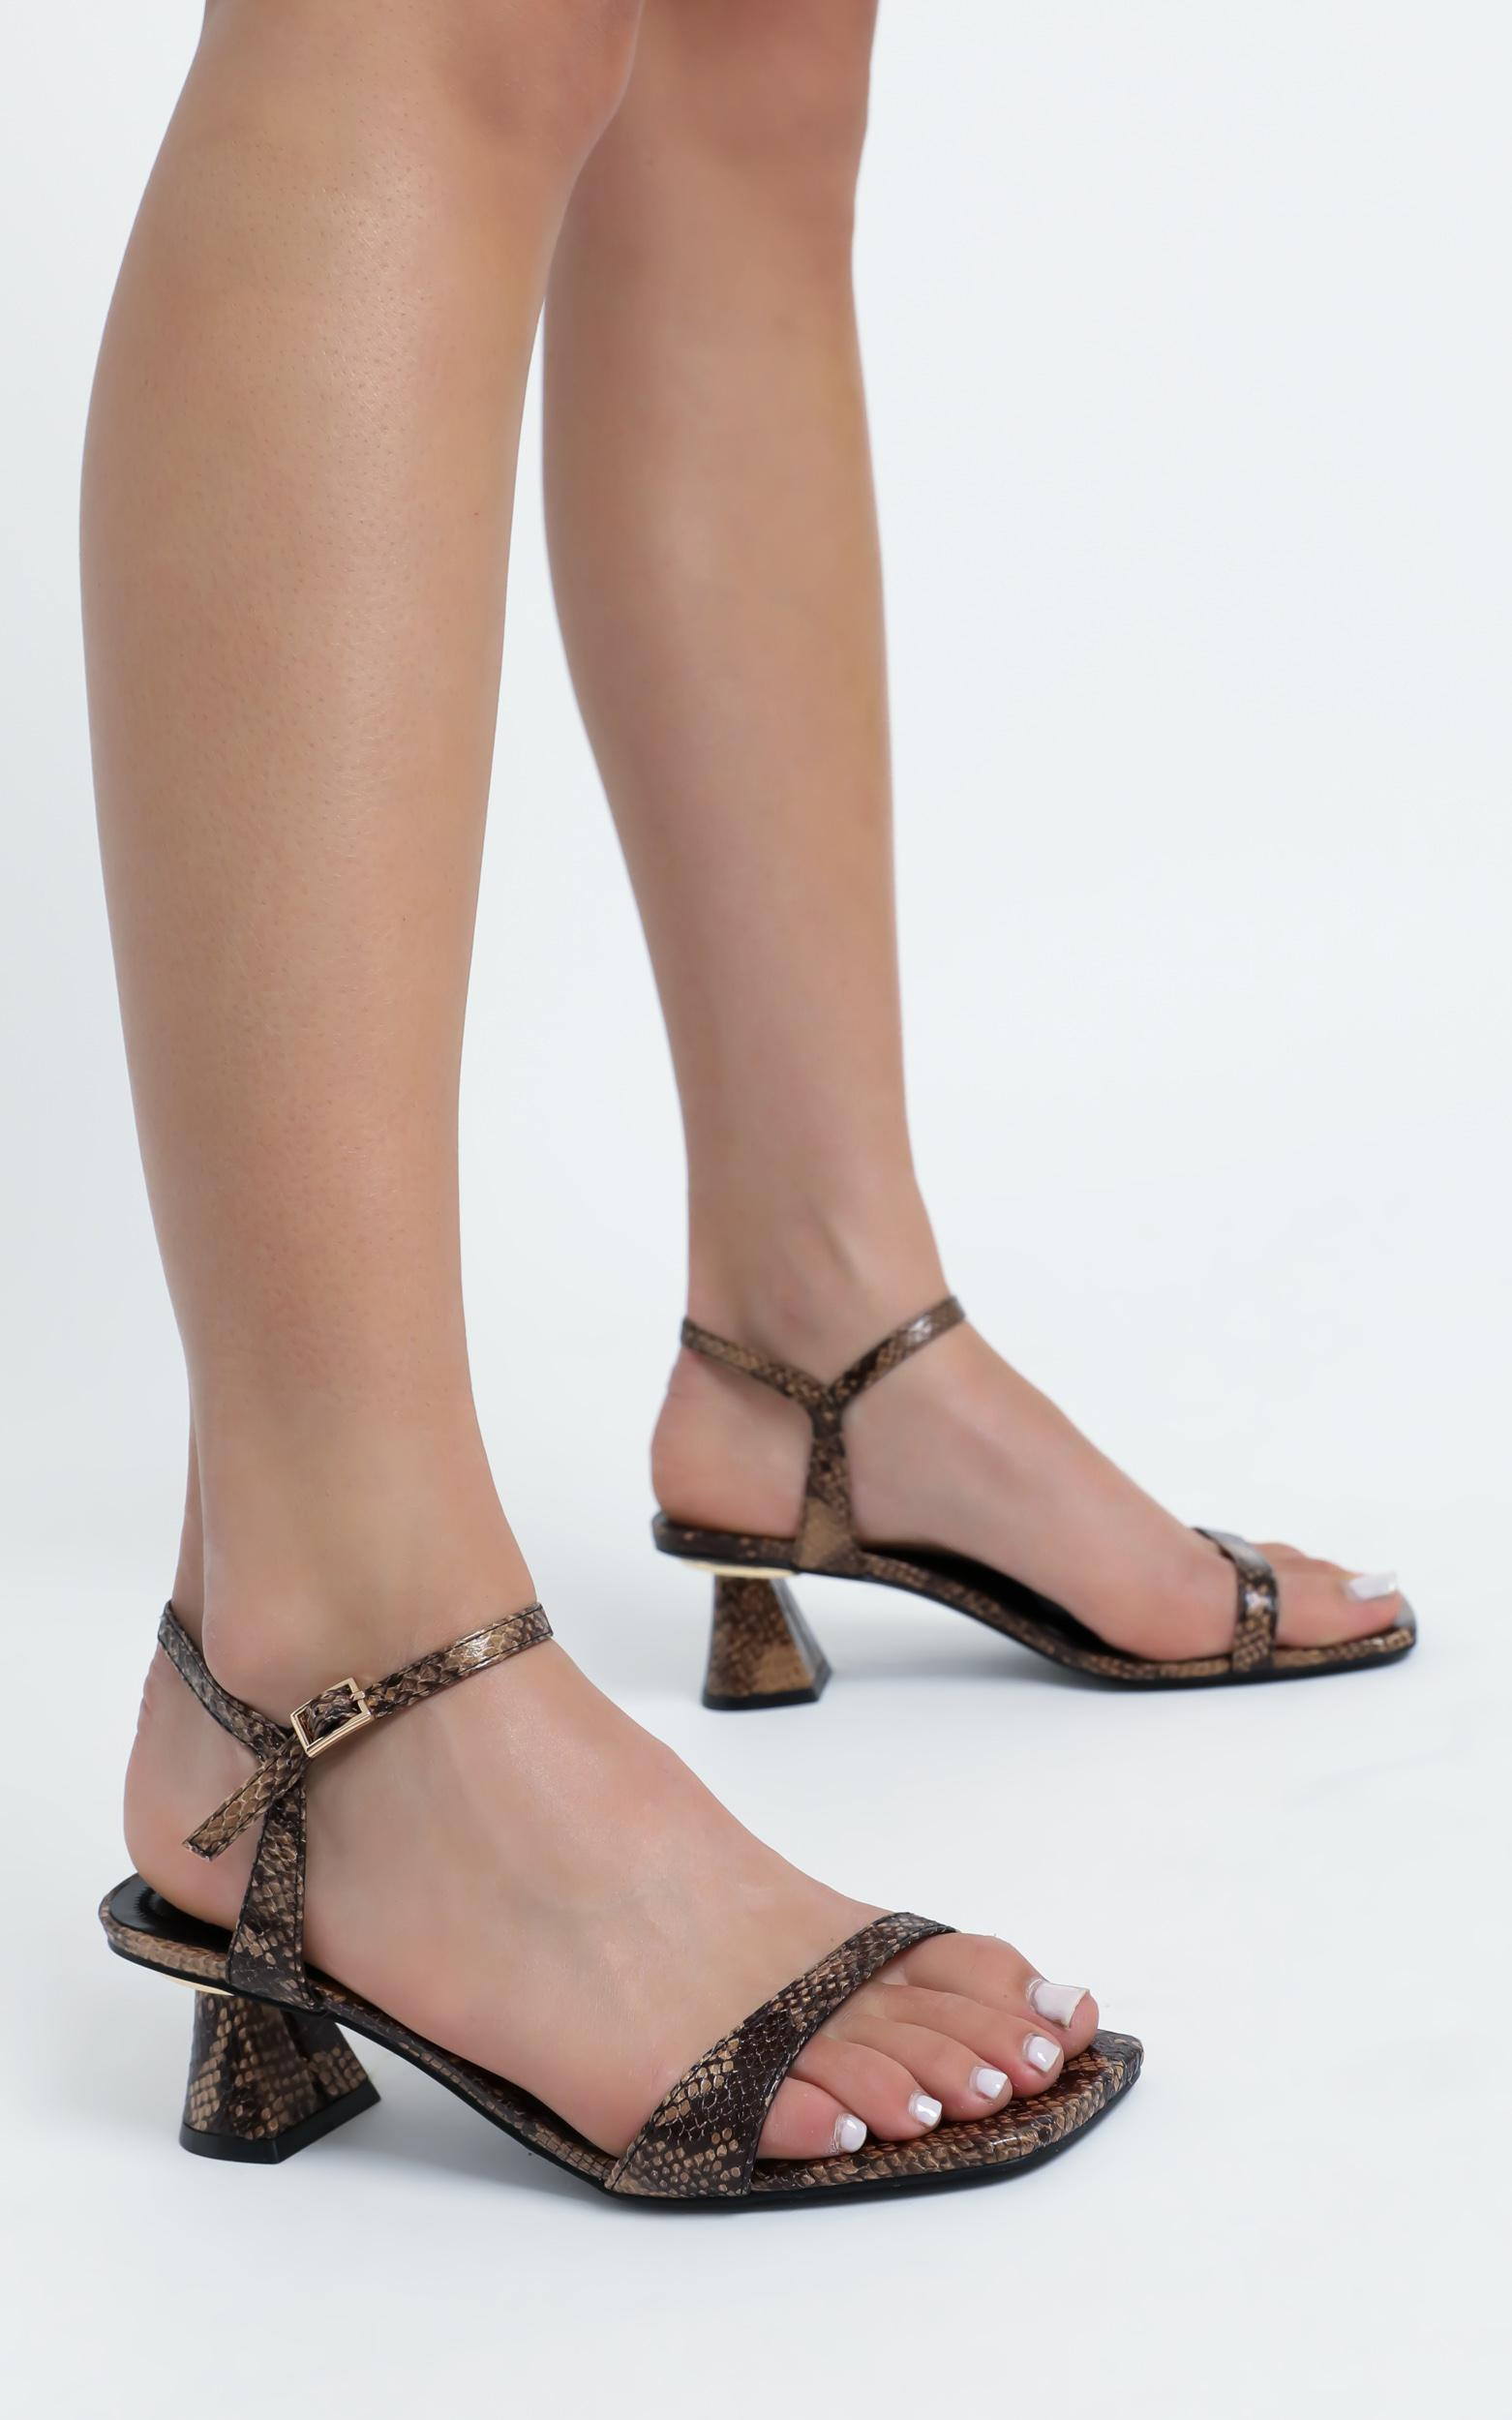 Therapy - Holly Heels in Snake Print - 5, Brown, hi-res image number null